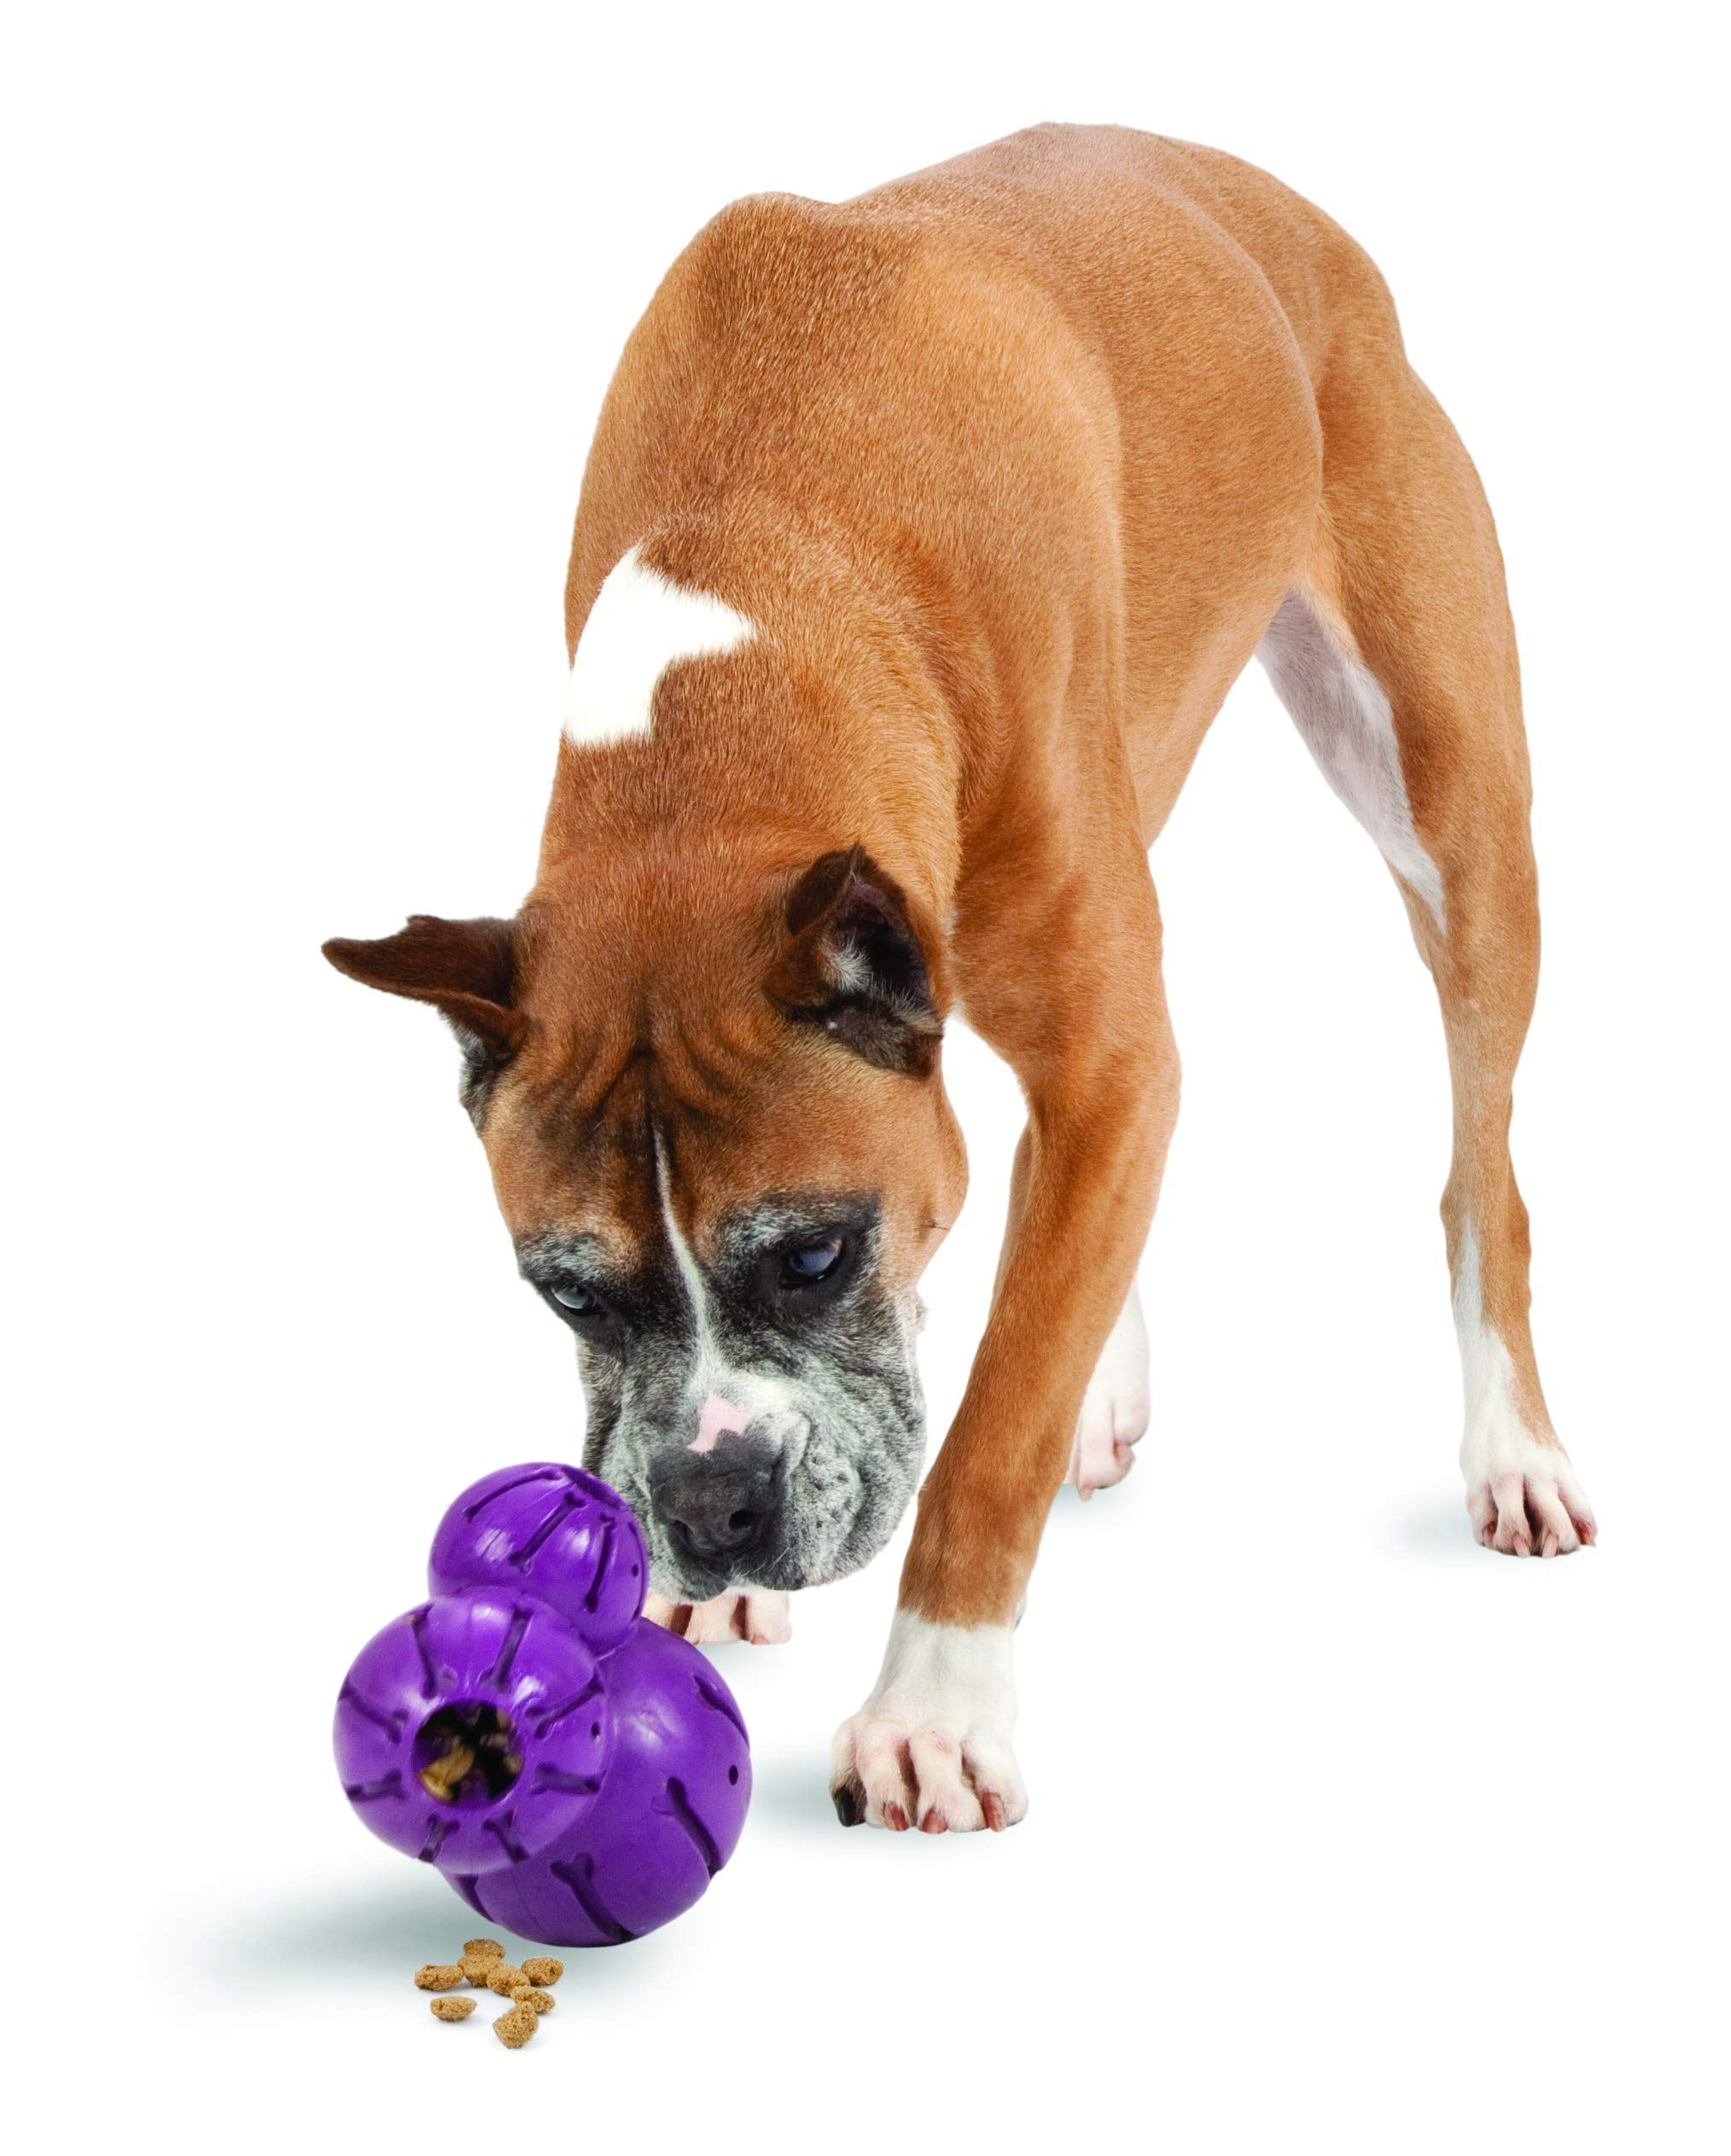 Busy Buddy Barnacle Treat Dispensing Dog Toy Ad Barnacle